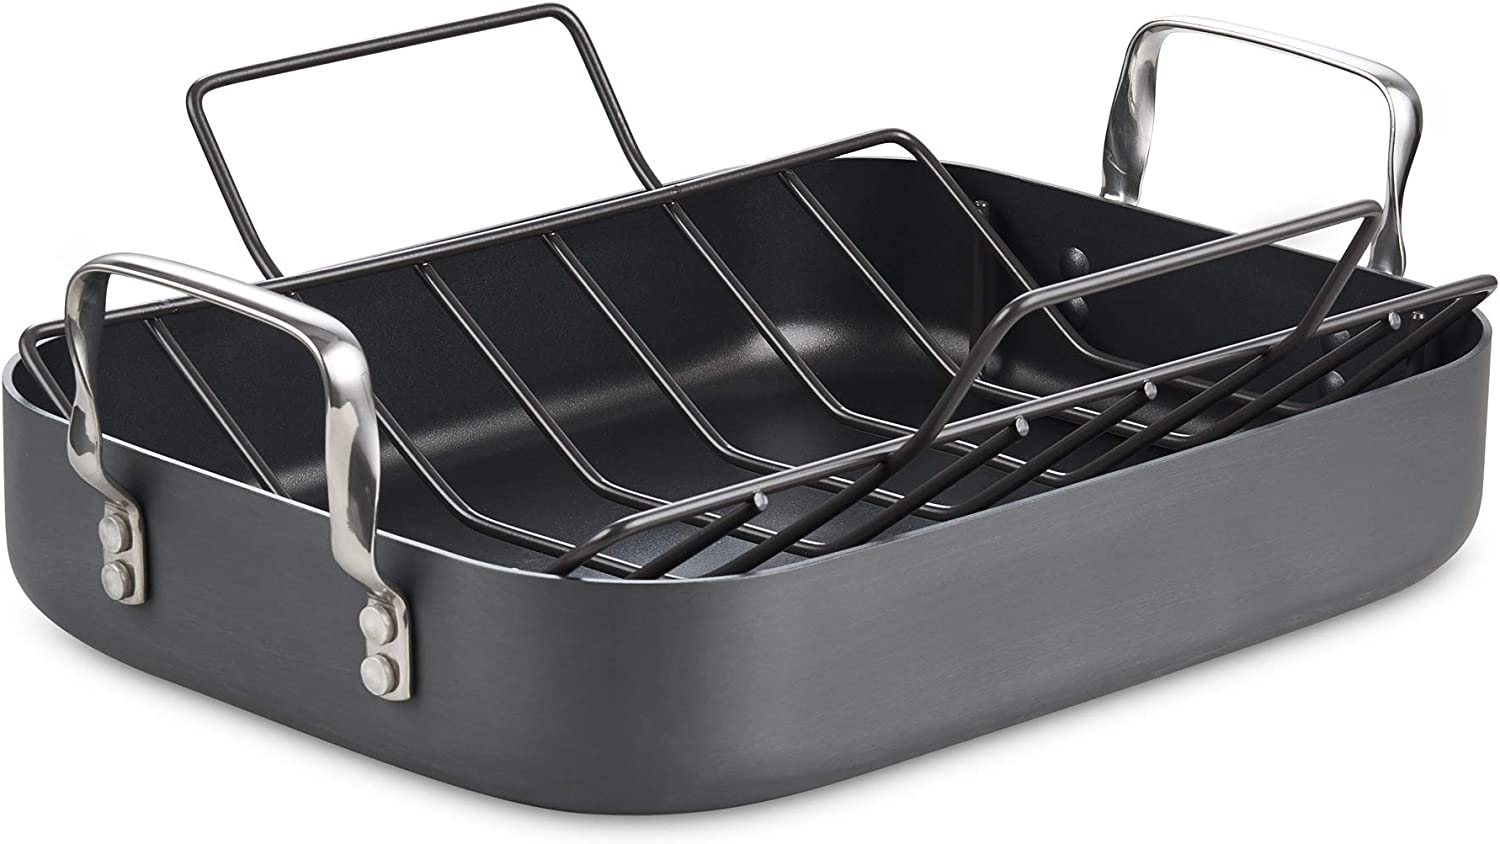 Cooks Standard 02672 Hard Anodized Nonstick Bakeware Roaster with rack, 16-inch x 12-inch, Black